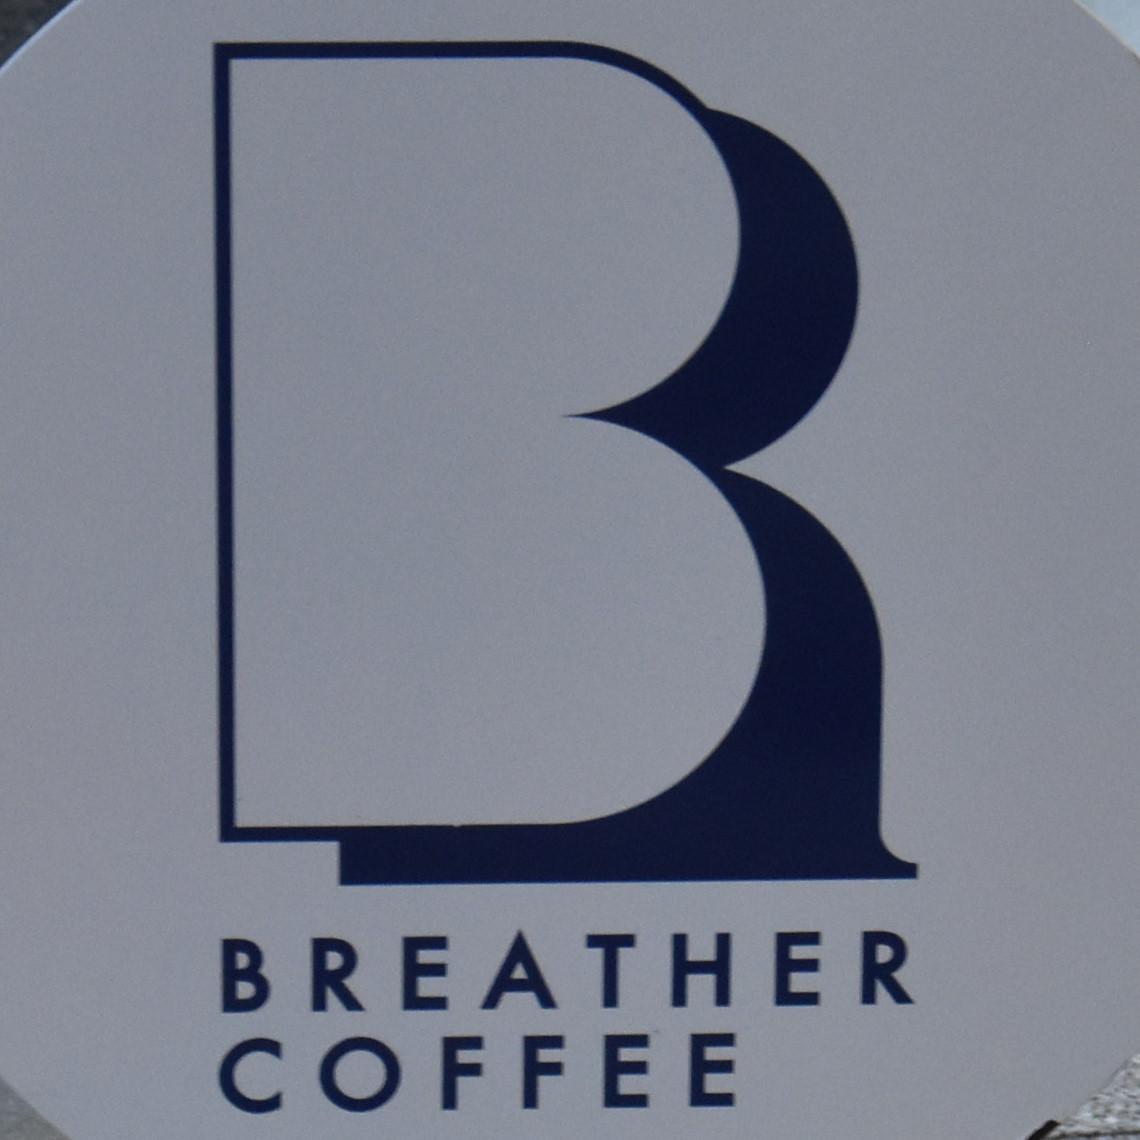 The Breather Coffee logo from the curbside sign outside the shop in Zushi, Kanagawa prefecture, Japan.